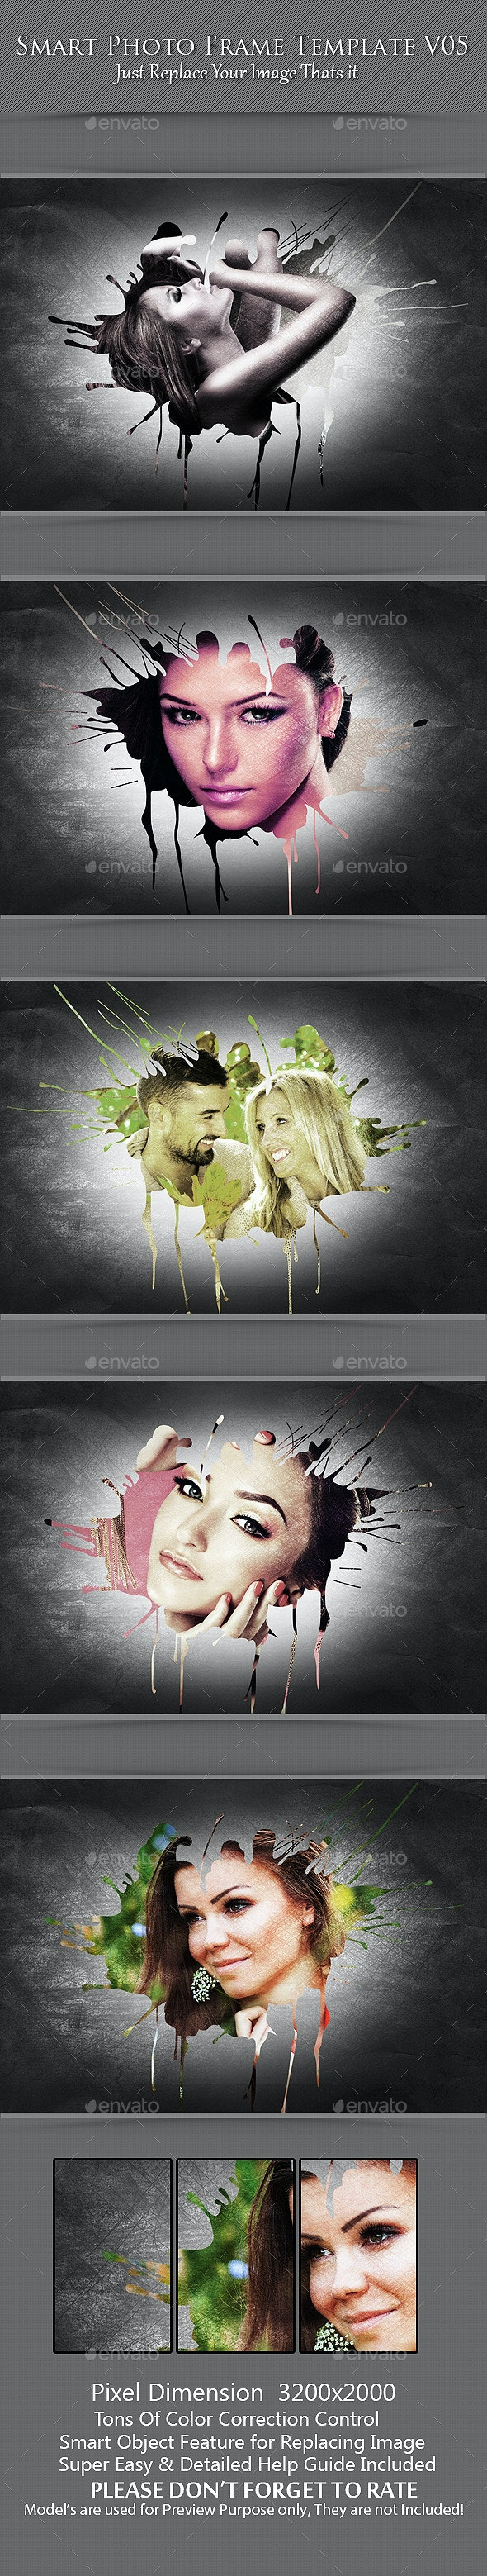 Smart Photo Frame Template V05 - Photo Templates Graphics